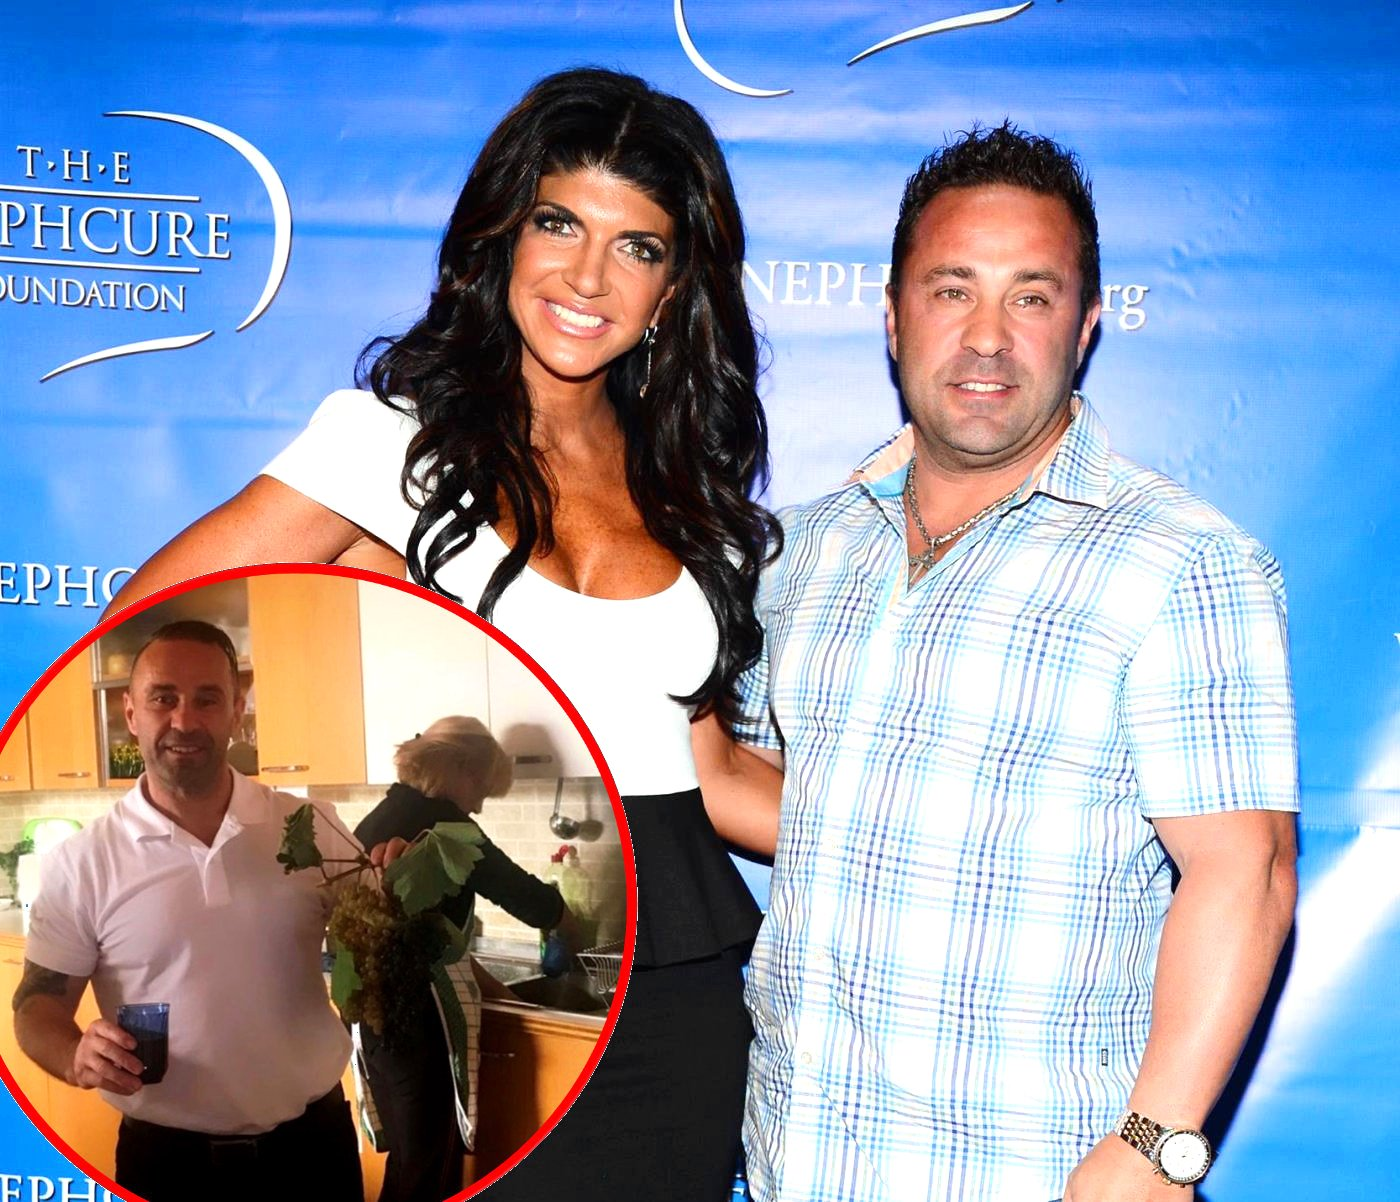 See the First Photos of Joe Giudice Showing Off His Weight Loss in Italy as Gia Reveals When She'll Visit! Plus Did Teresa Receives Salary Bonus for Filming RHONJ With Husband?